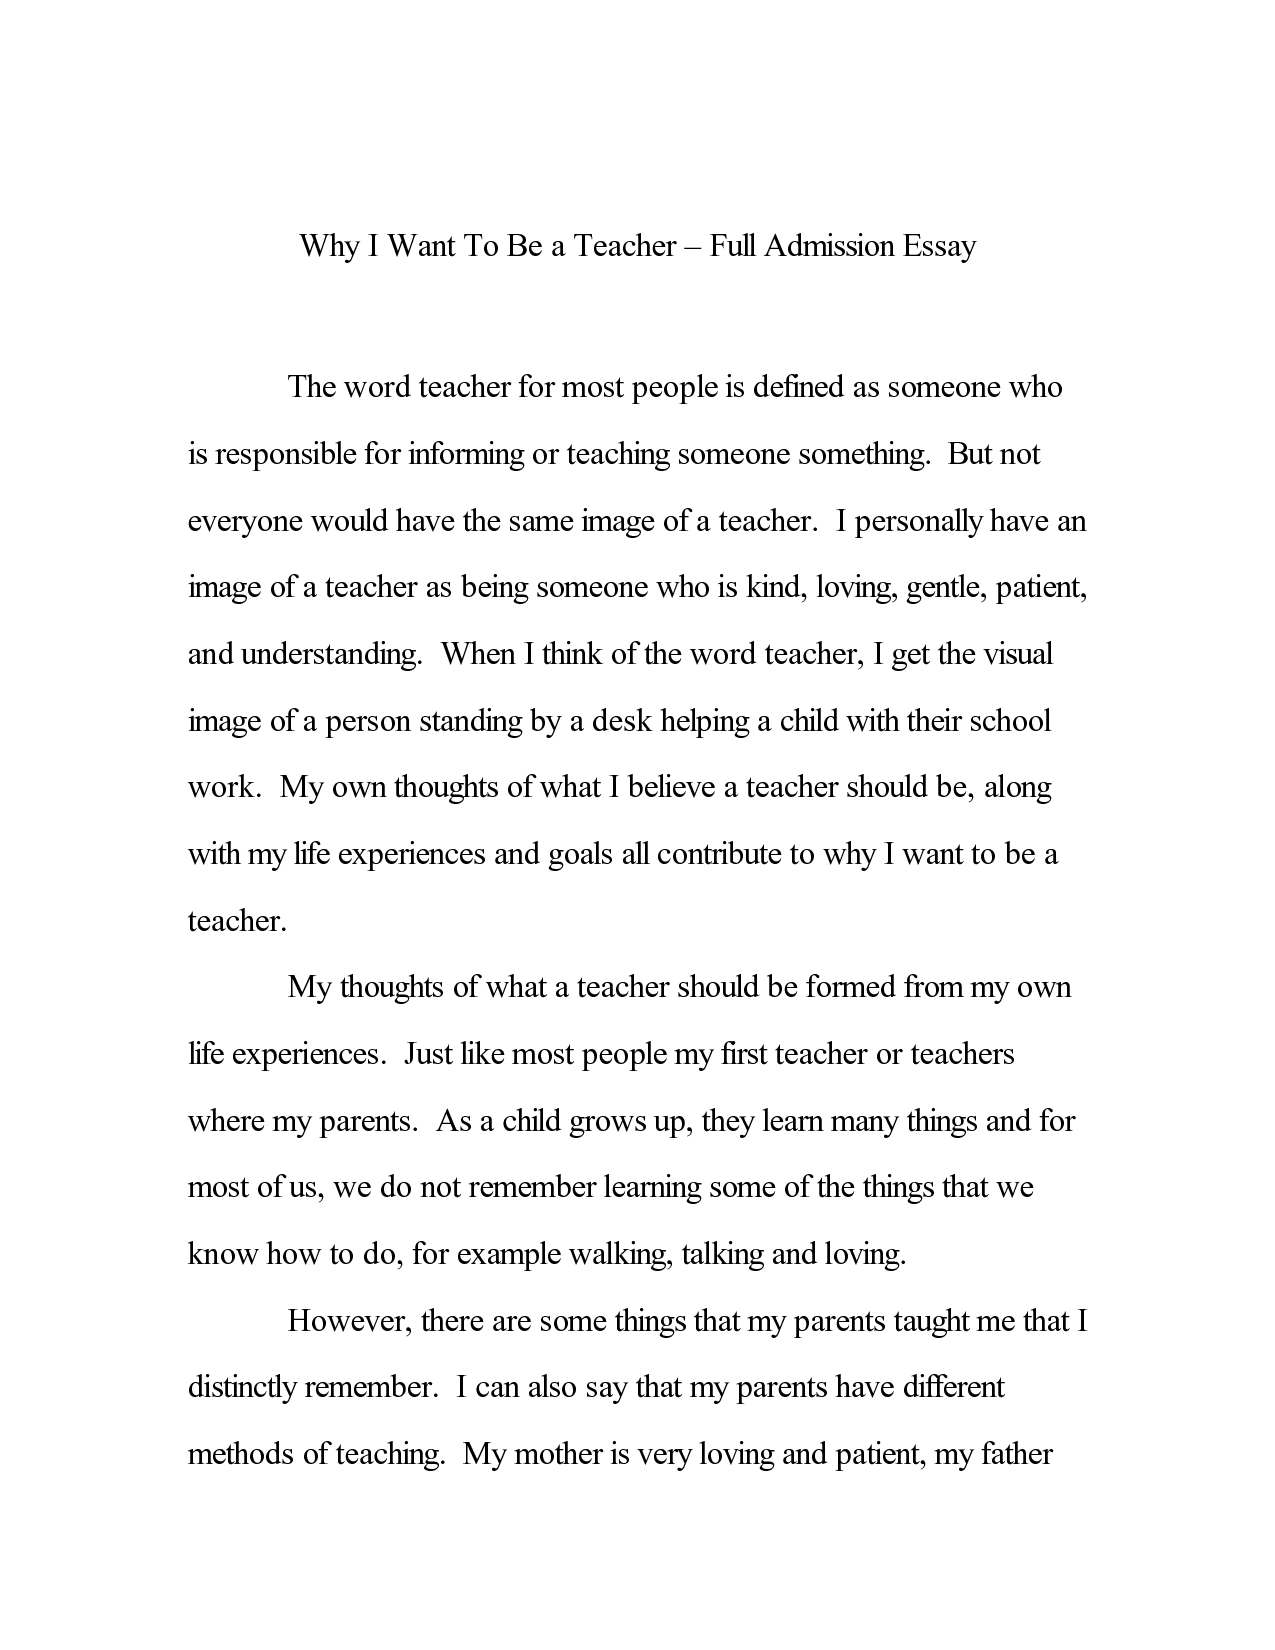 006 Zcwrpapbvx College Entry Essay Amazing Admissions Tips Application Personal Statement 12 Admission Essays That Worked Full